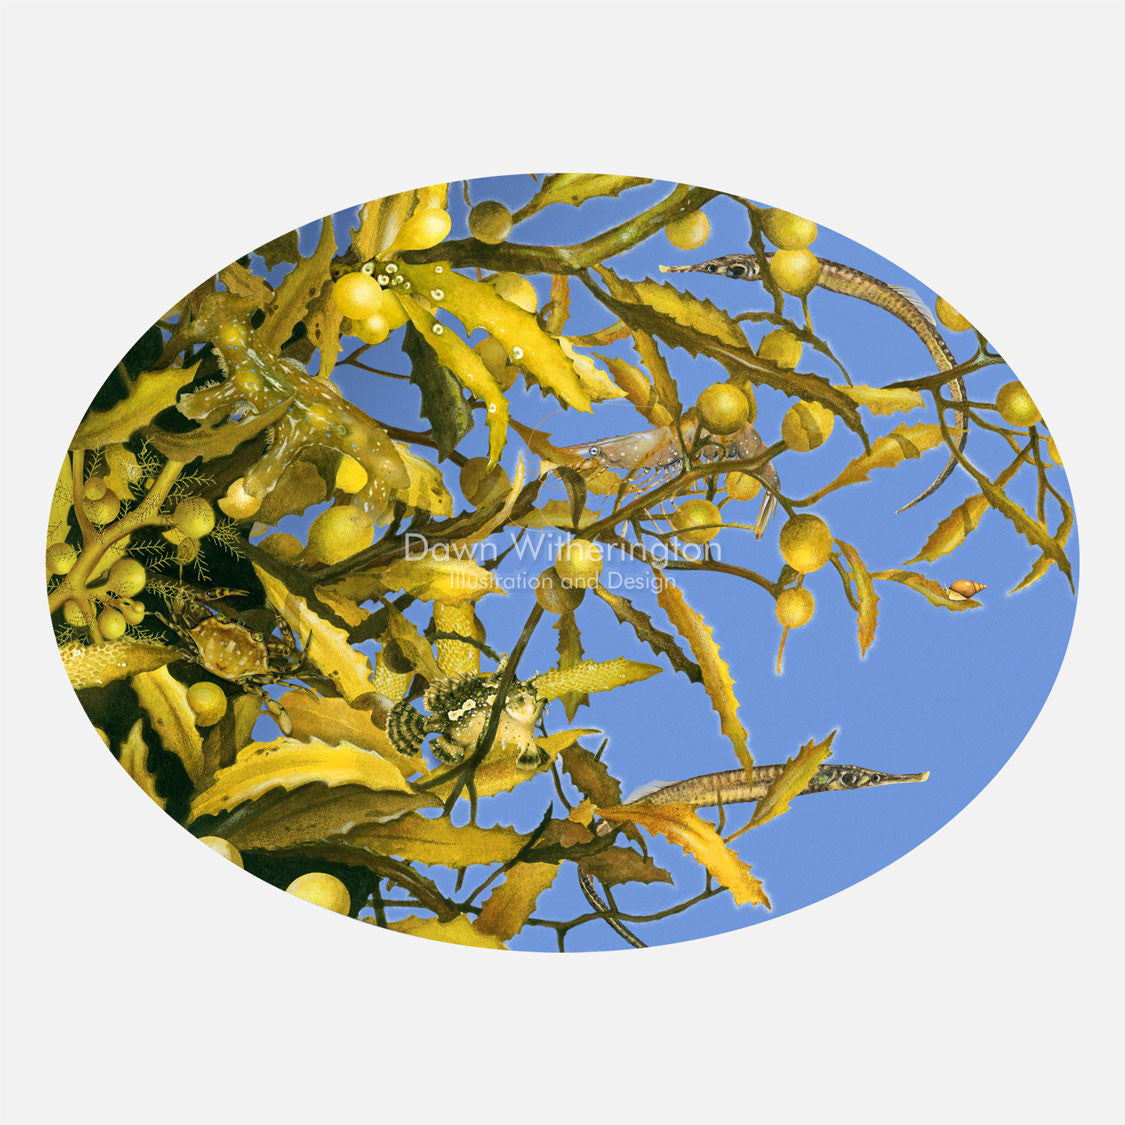 This illustration is of small animals associated with the sargassum community. The art features sargassum fish, sargassum shrimp, a sargassum nudibranch, and other animals found in sargassum.